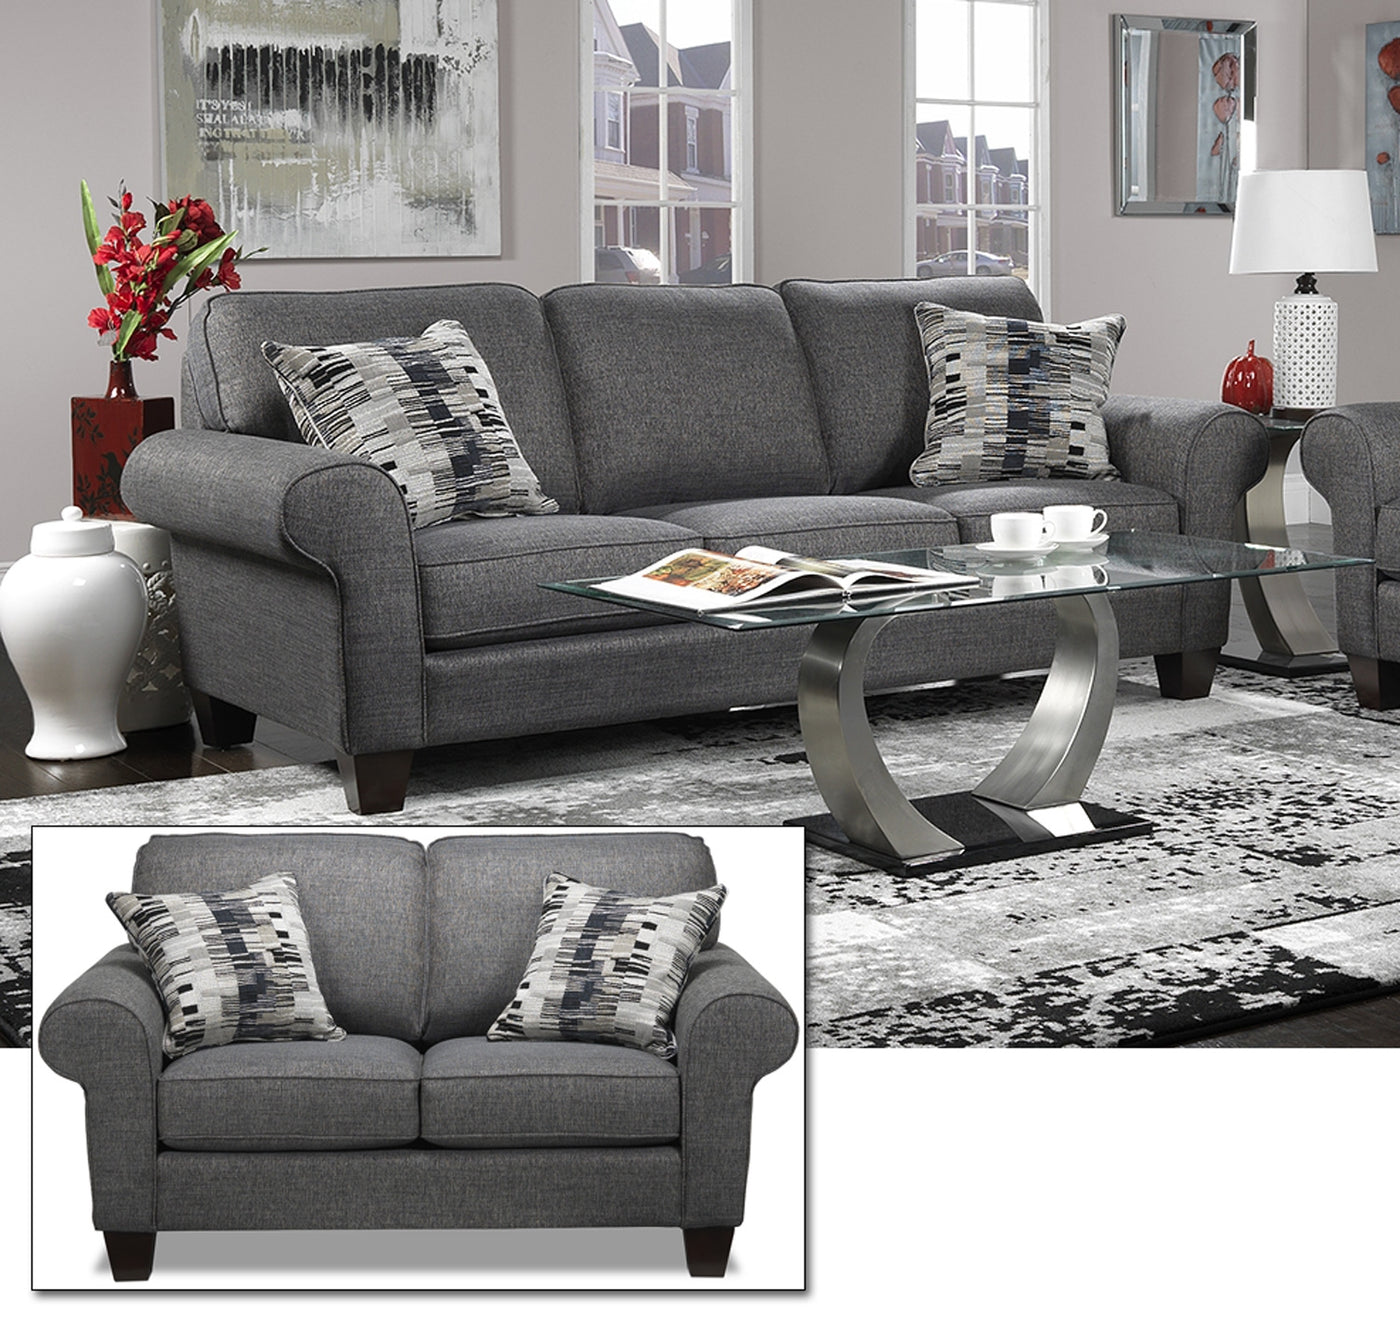 Drake 6 Pc. Living Room Package - Grey